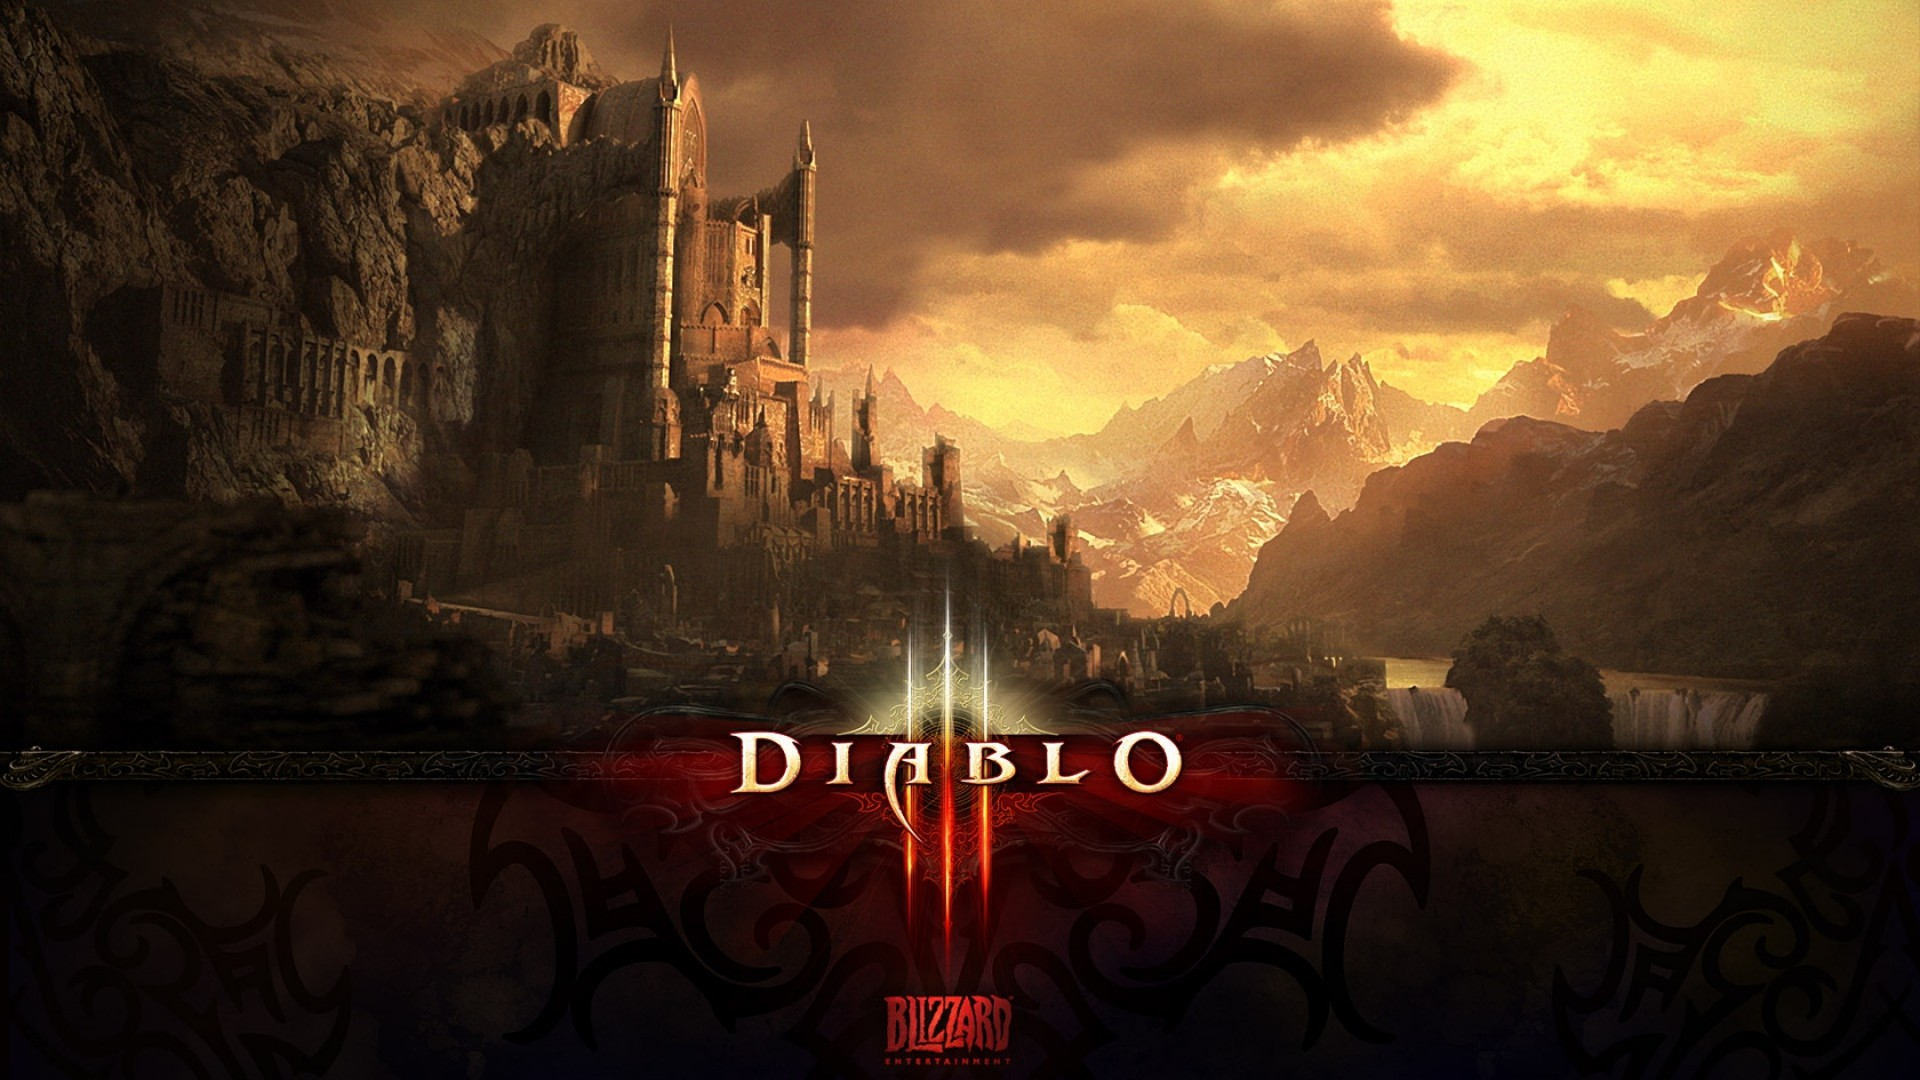 2560x1440 Diablo 3 Wallpaper HD With High Definition Resolution Px KB